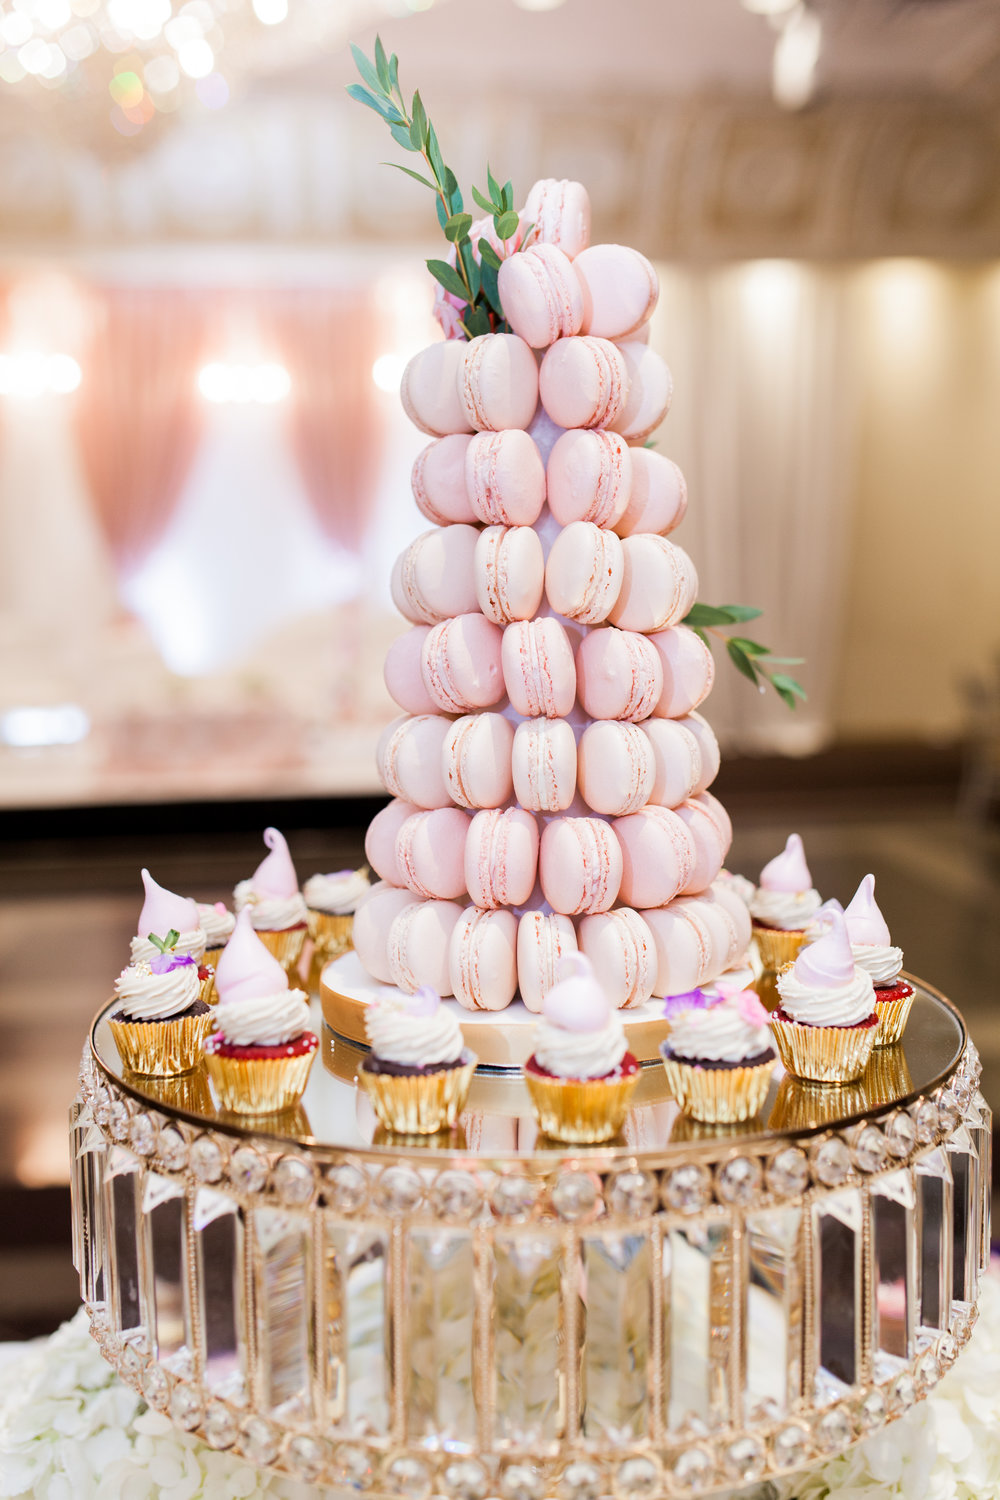 Wedding Details Toronto Photographer Le Dolci Cupcakes Meringues